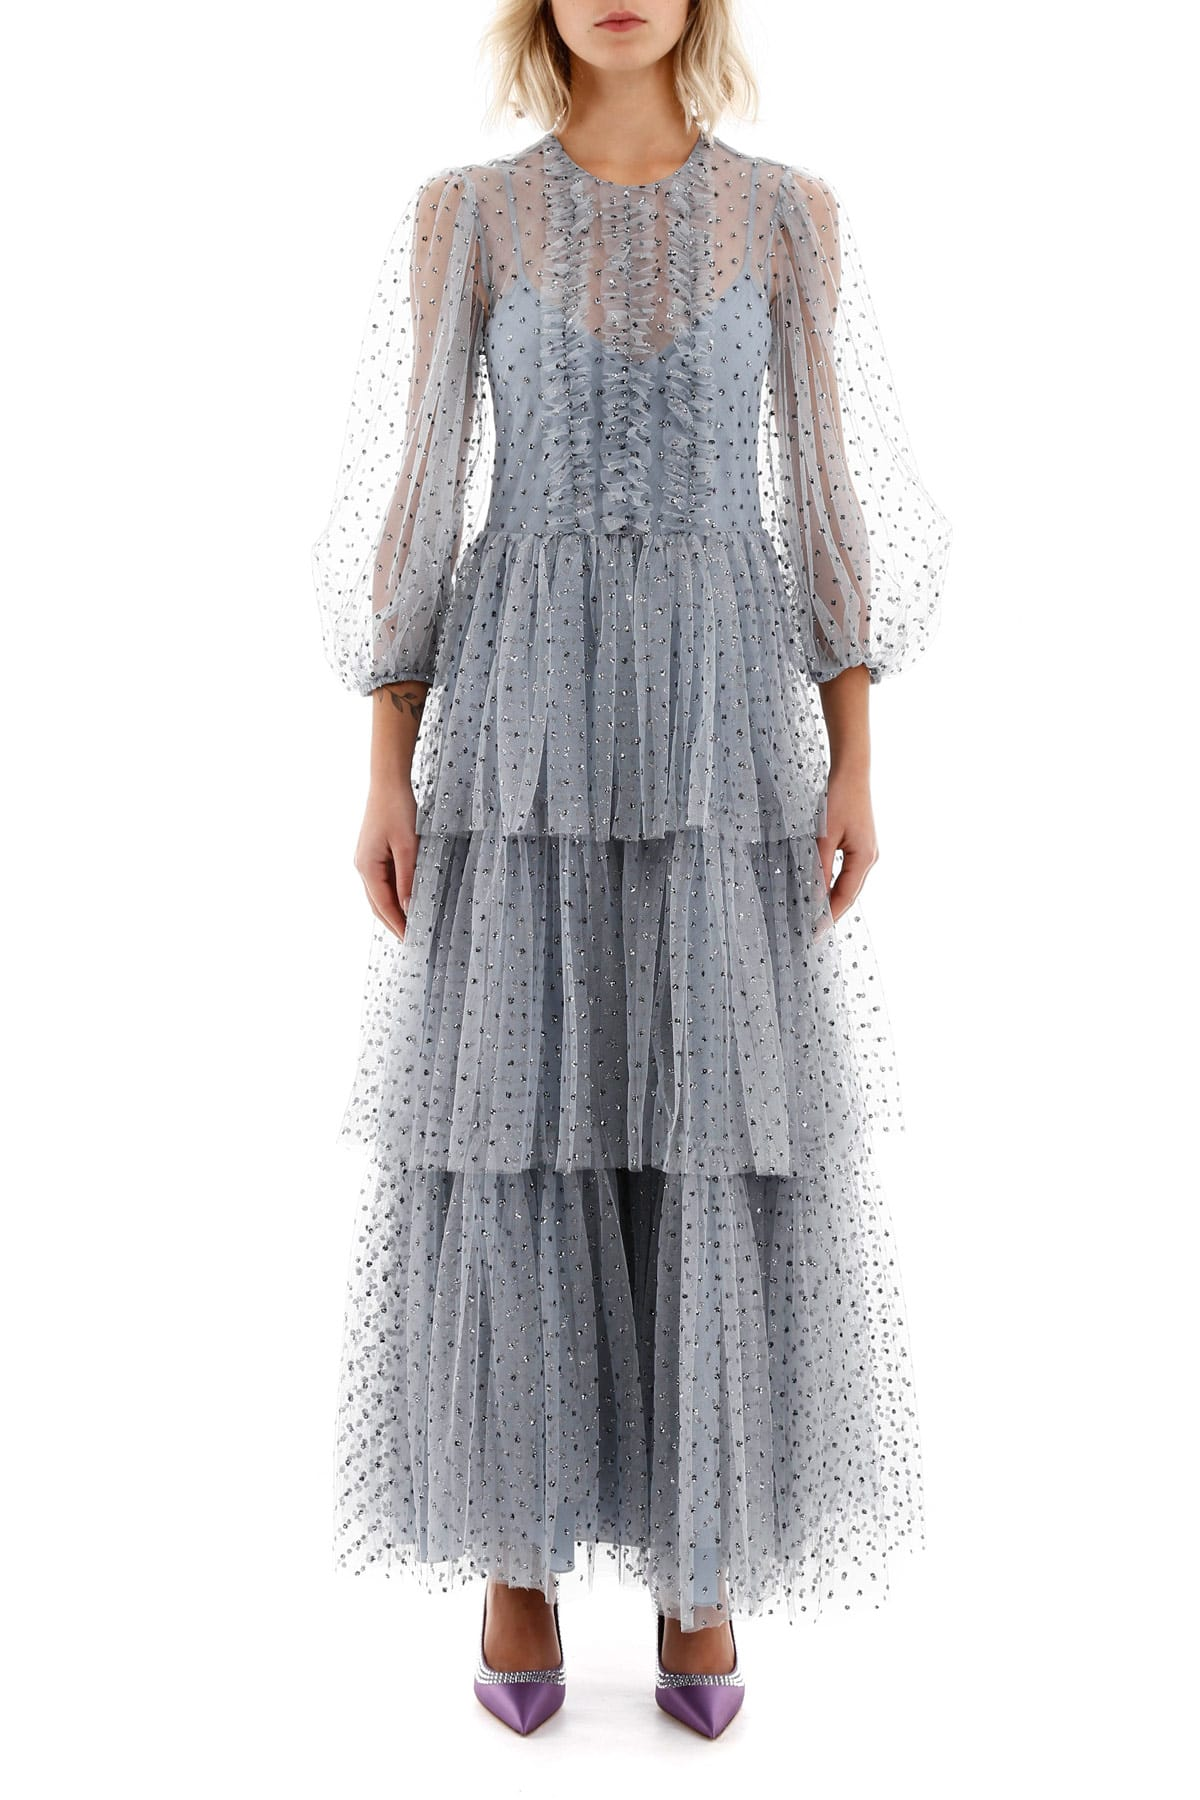 RED Valentino Tulle Dress With Glitter Polka Dots